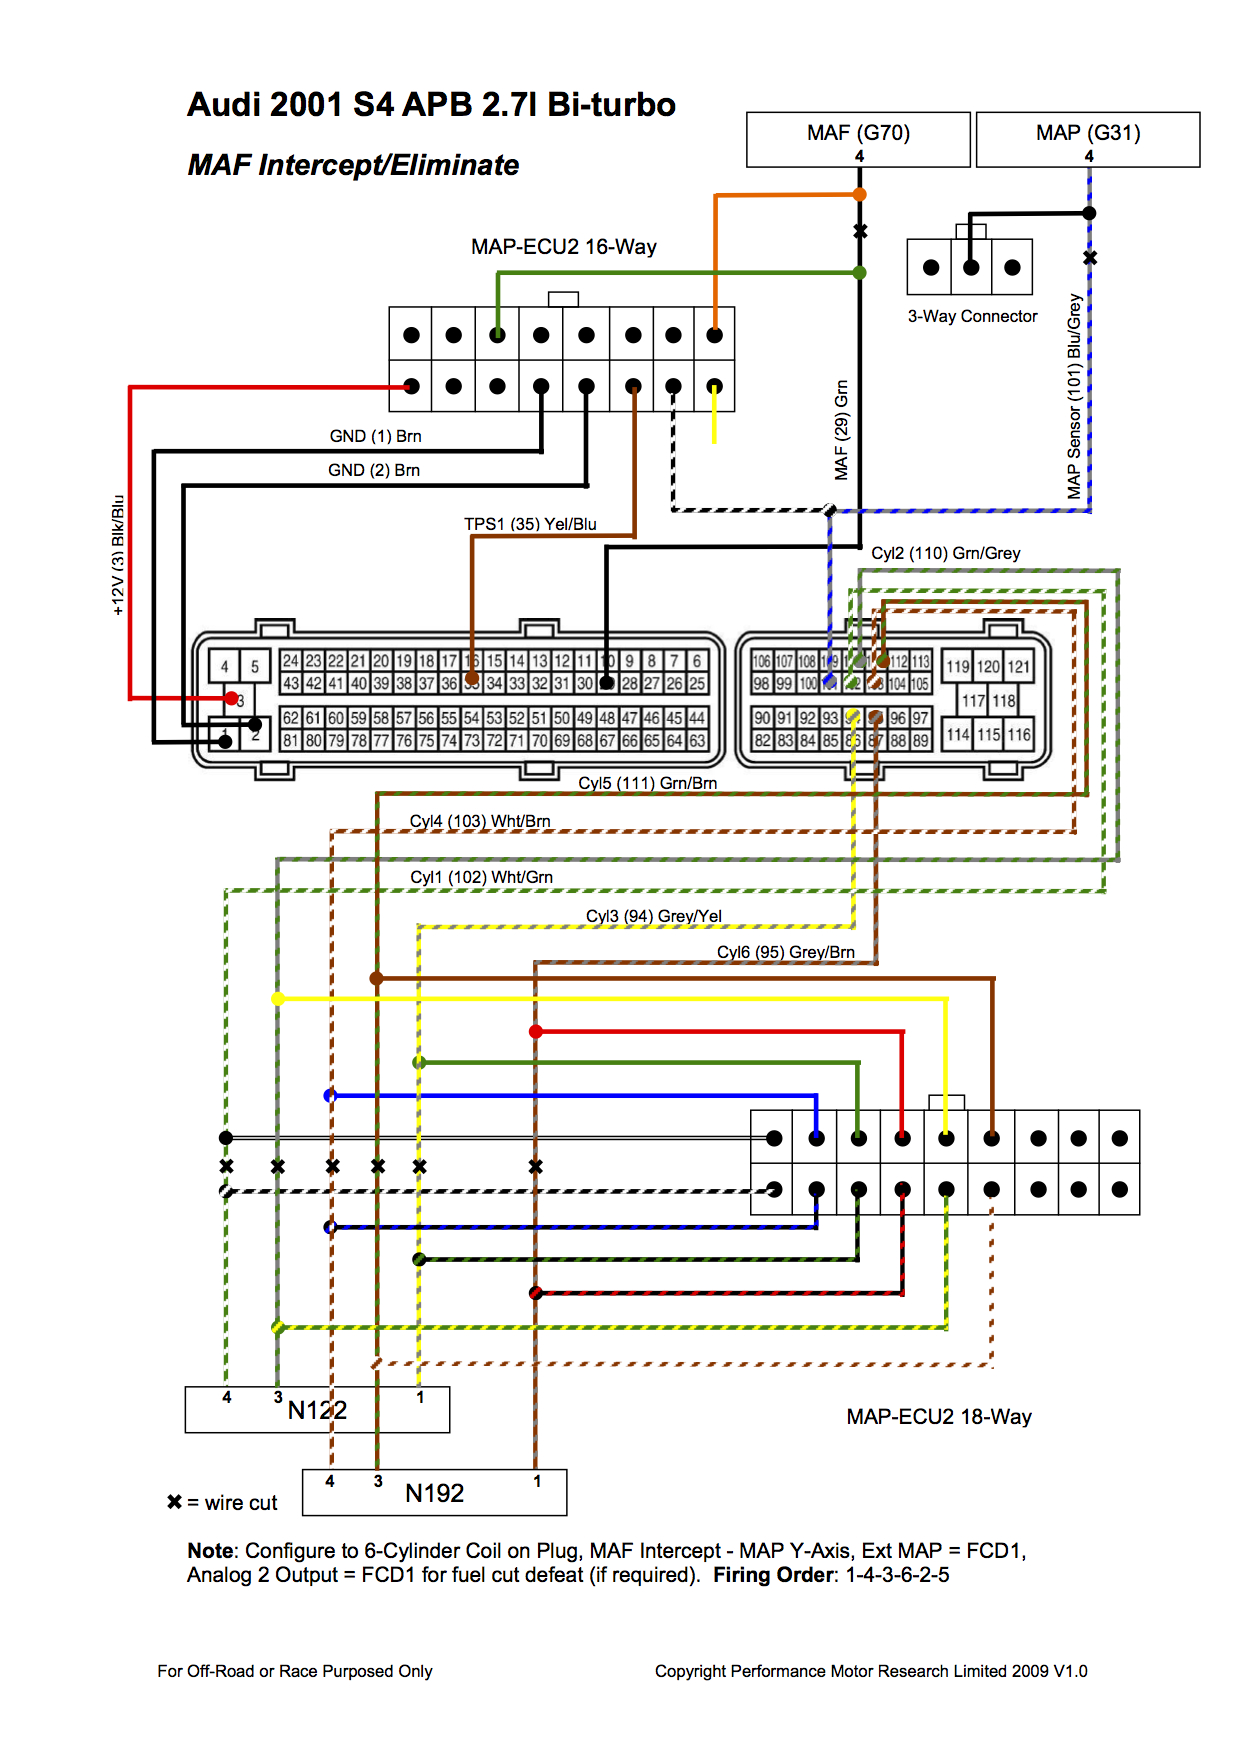 Audi S4 20011 ecu wiring diagram mini cooper ecu wiring diagram \u2022 wiring 2007 Chrysler Town and Country Wiring-Diagram at edmiracle.co